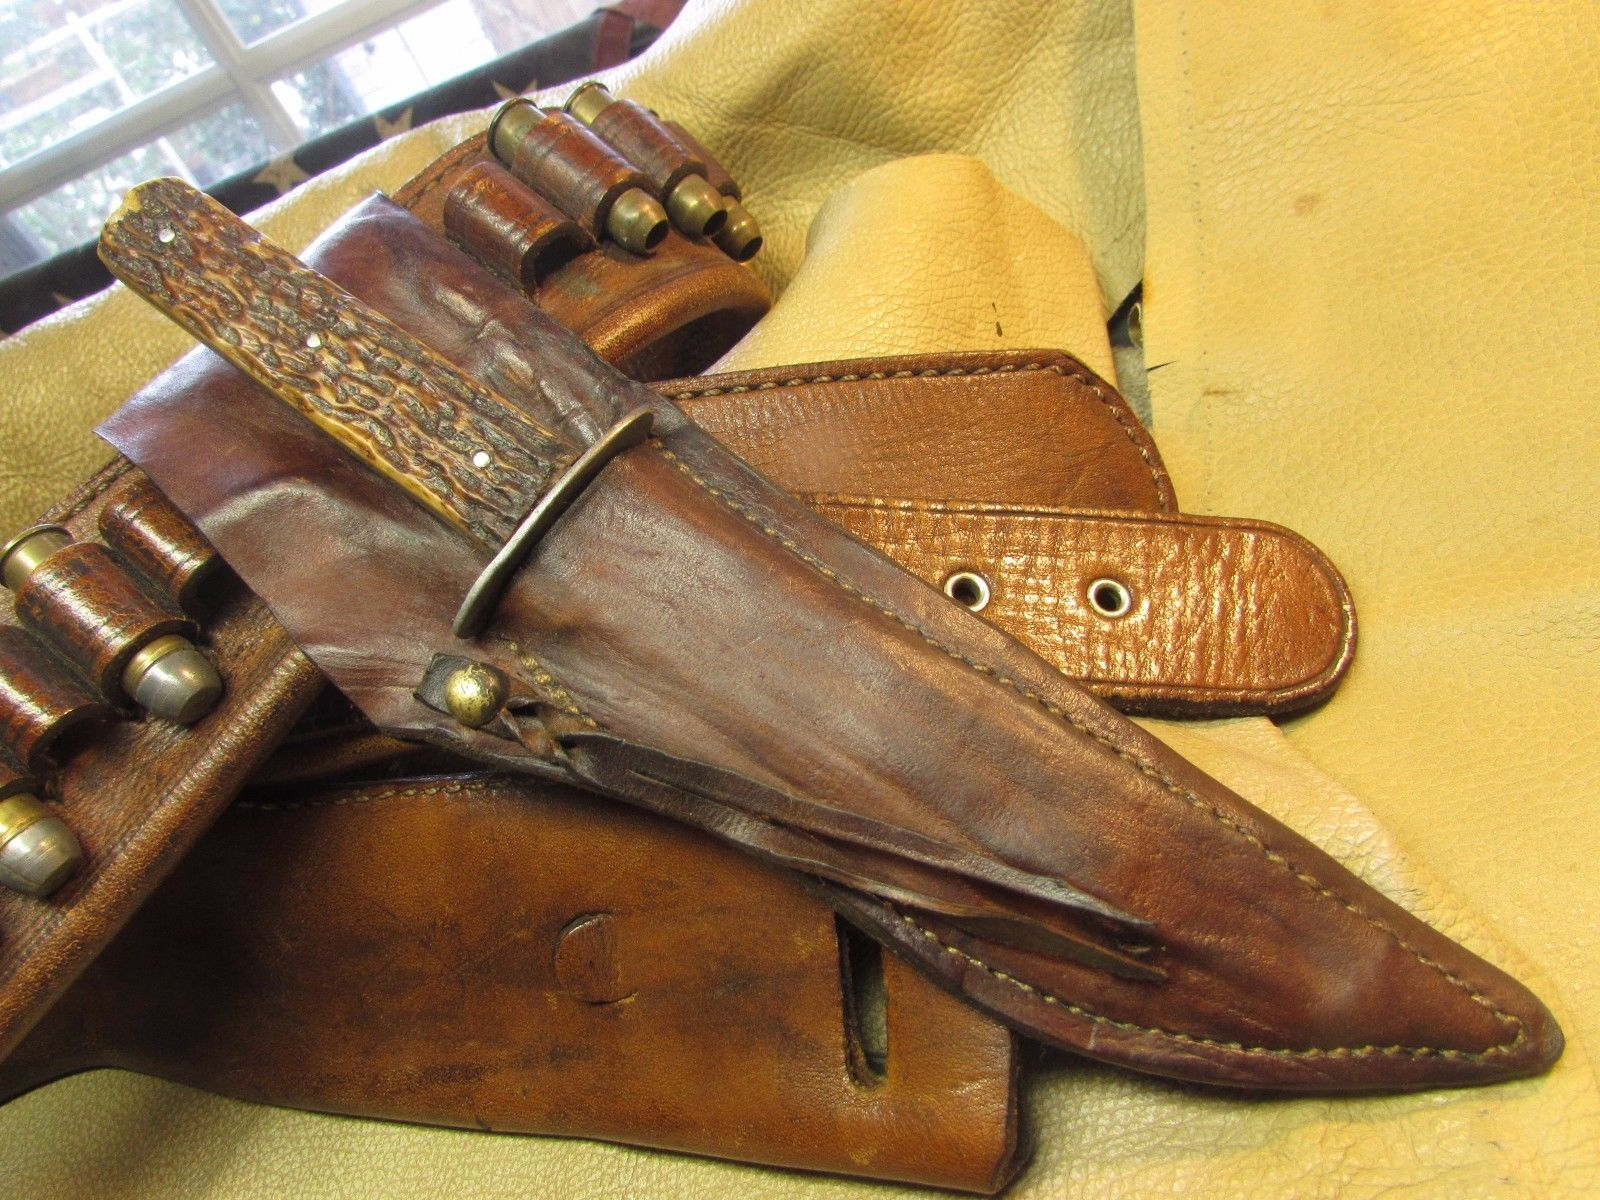 Vintage Stag Hunting Knife, Small Bowie Knife, Cowboy Action